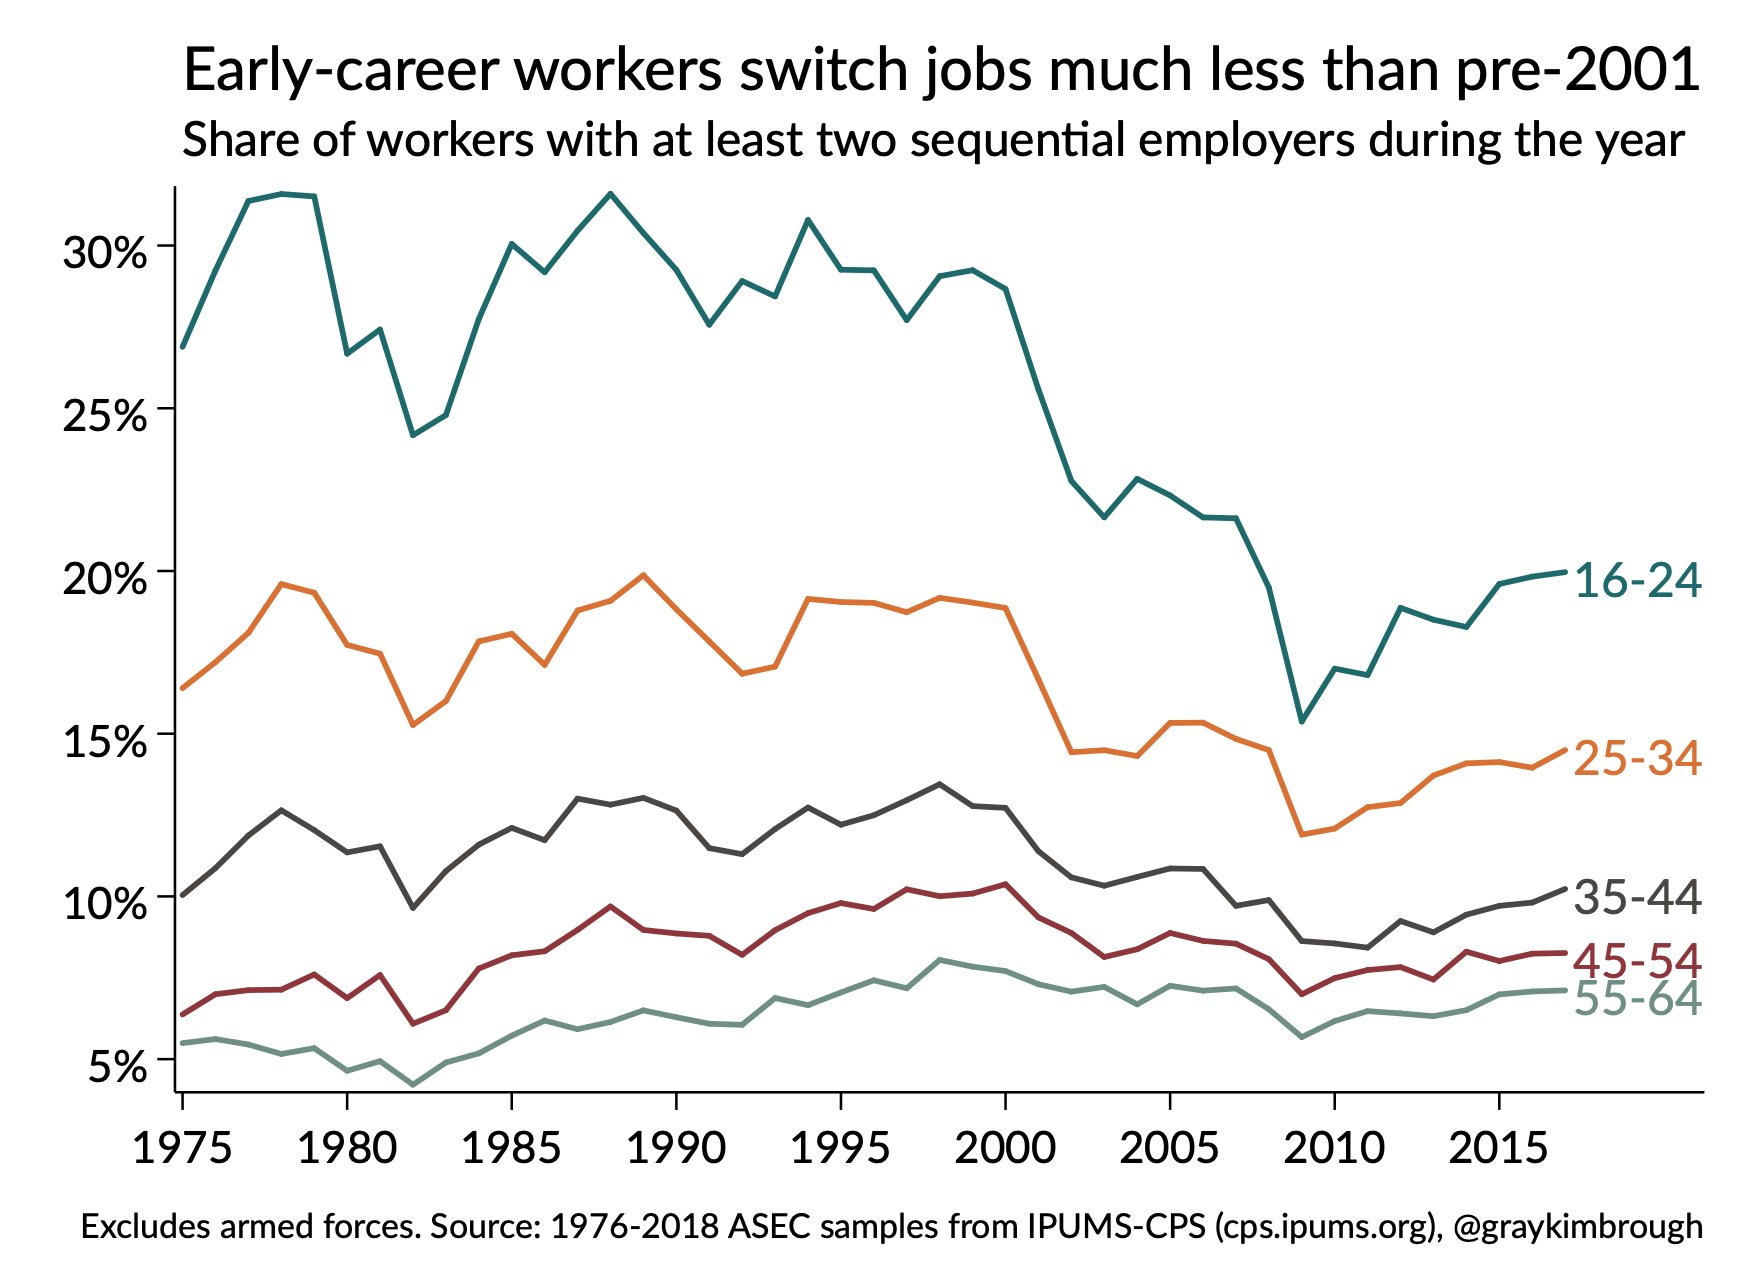 """Let's be clear: millennials are not """"job hopping."""" Young adults aren't even switching jobs at anything close to the levels of those in their age groups before 2001. https://t.co/YyteHquu6K"""